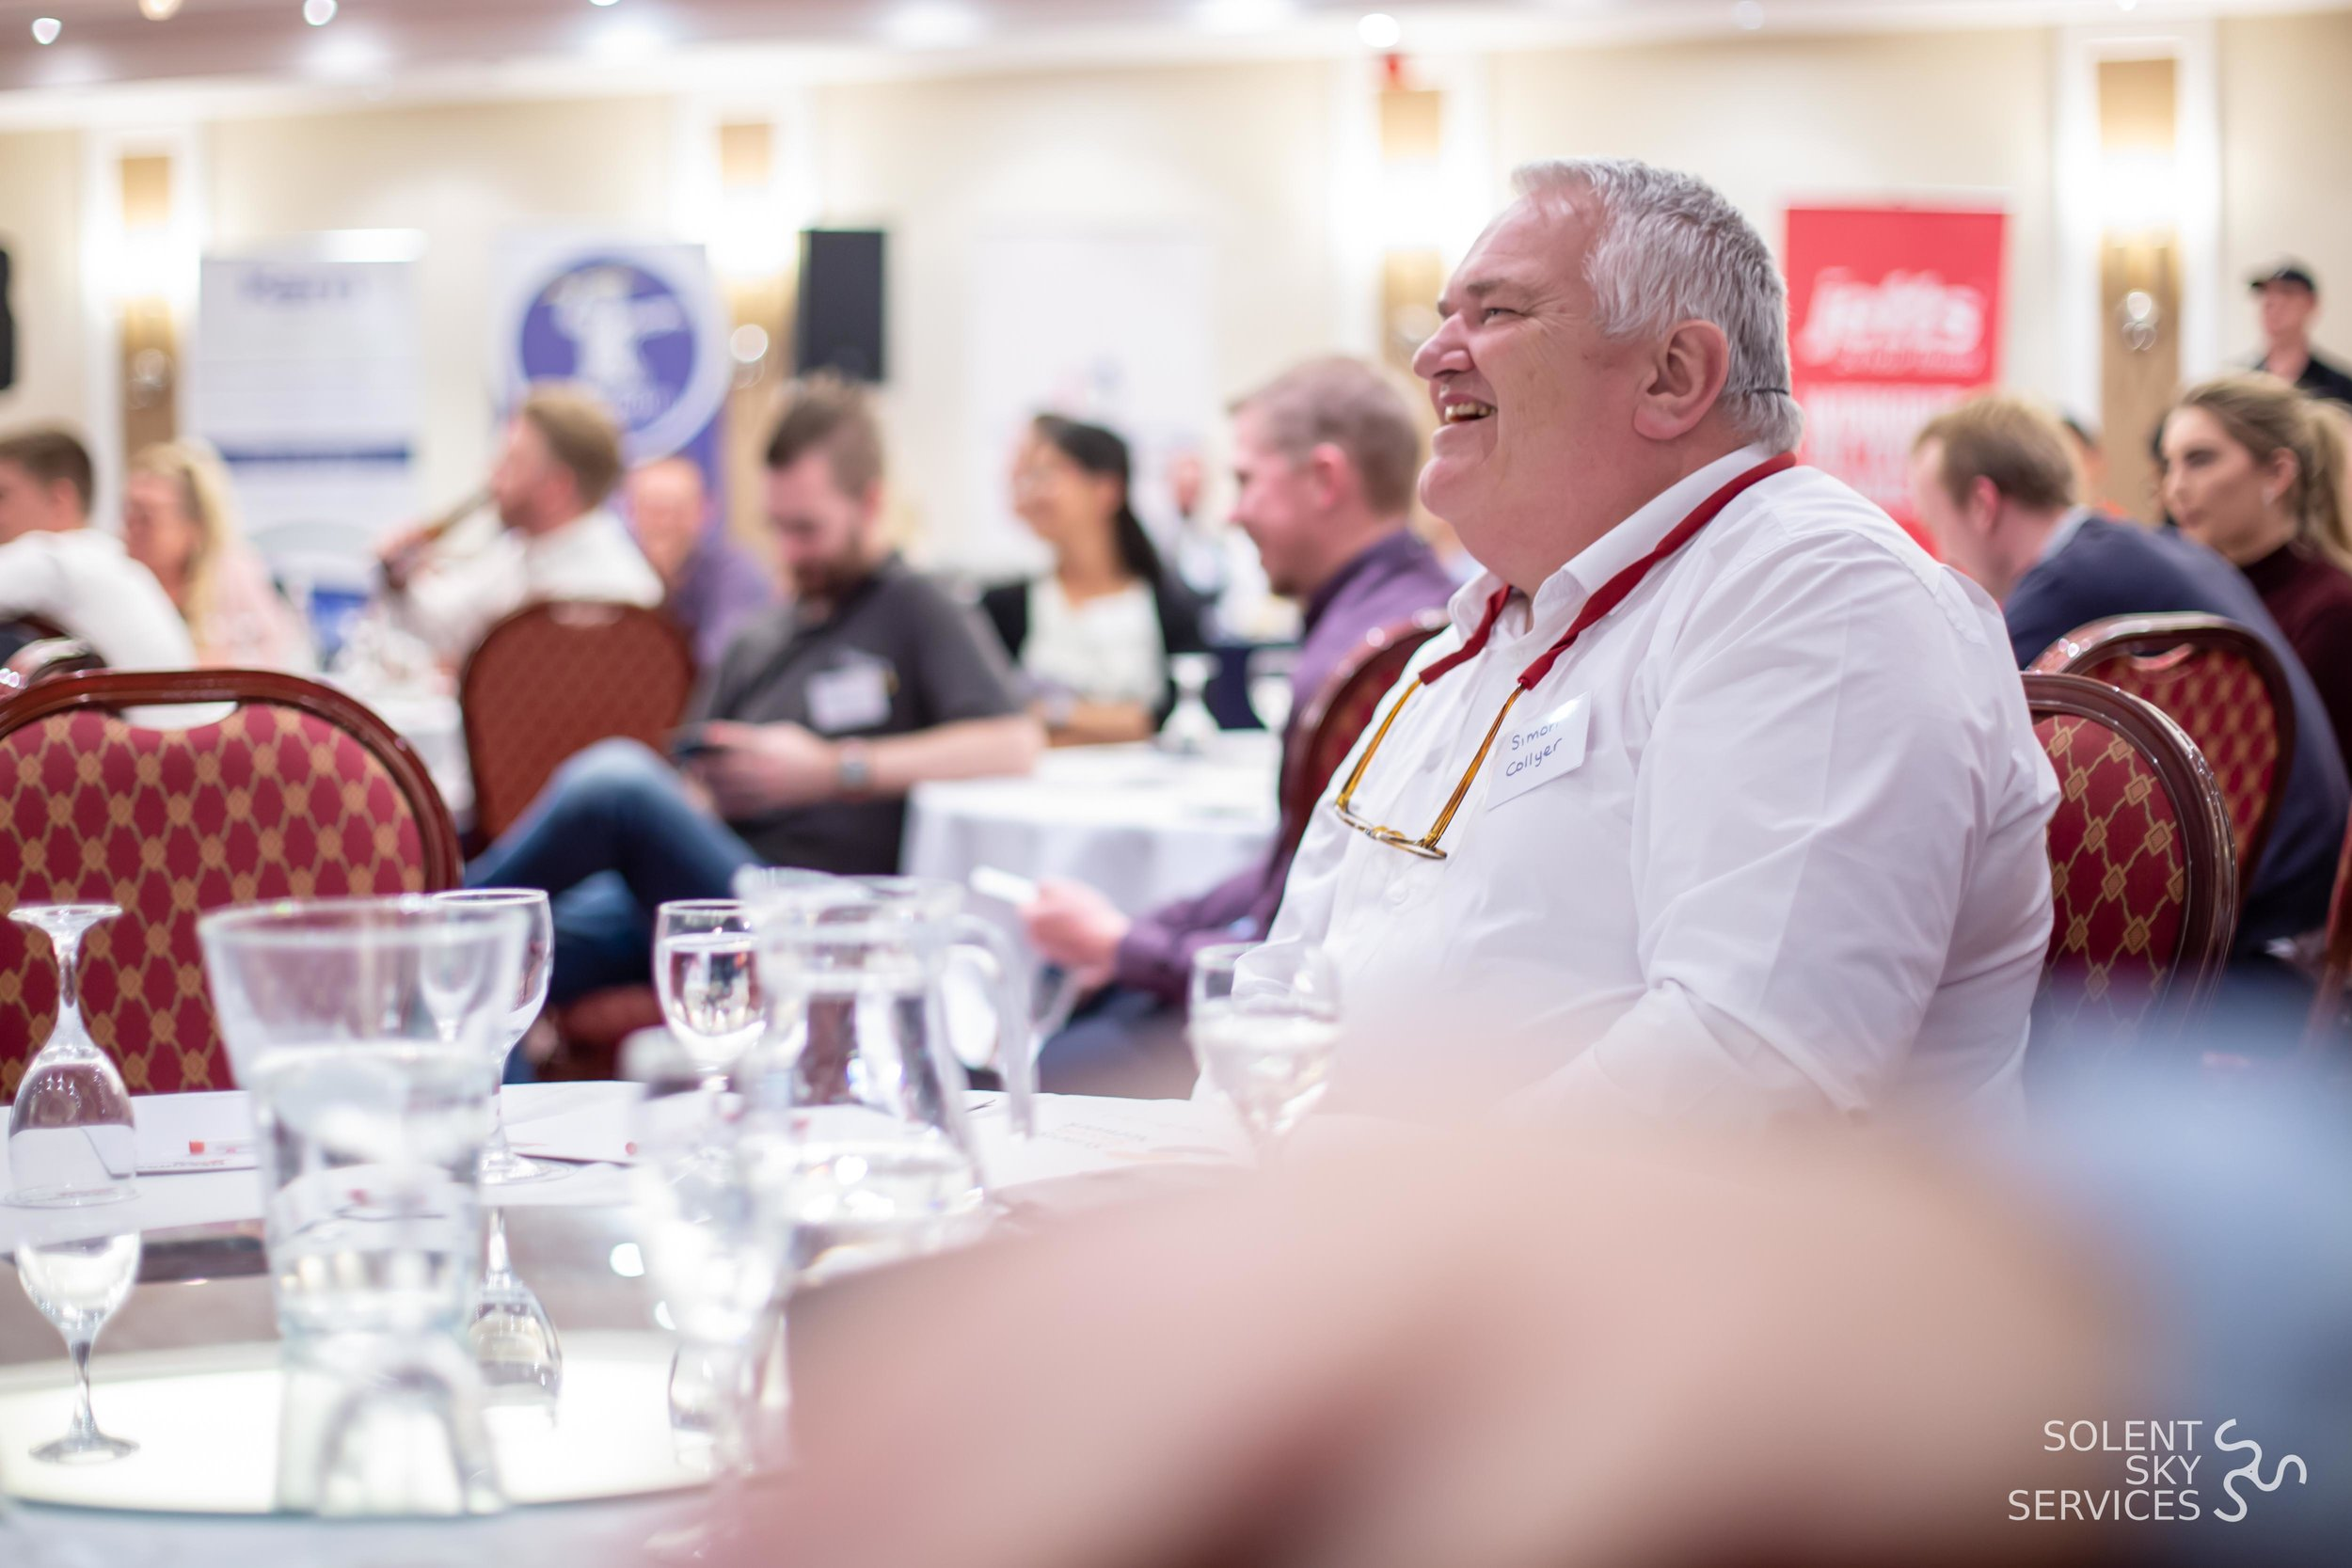 Synergy Success Networking Event #2 - Solent Sky Services-58.JPG